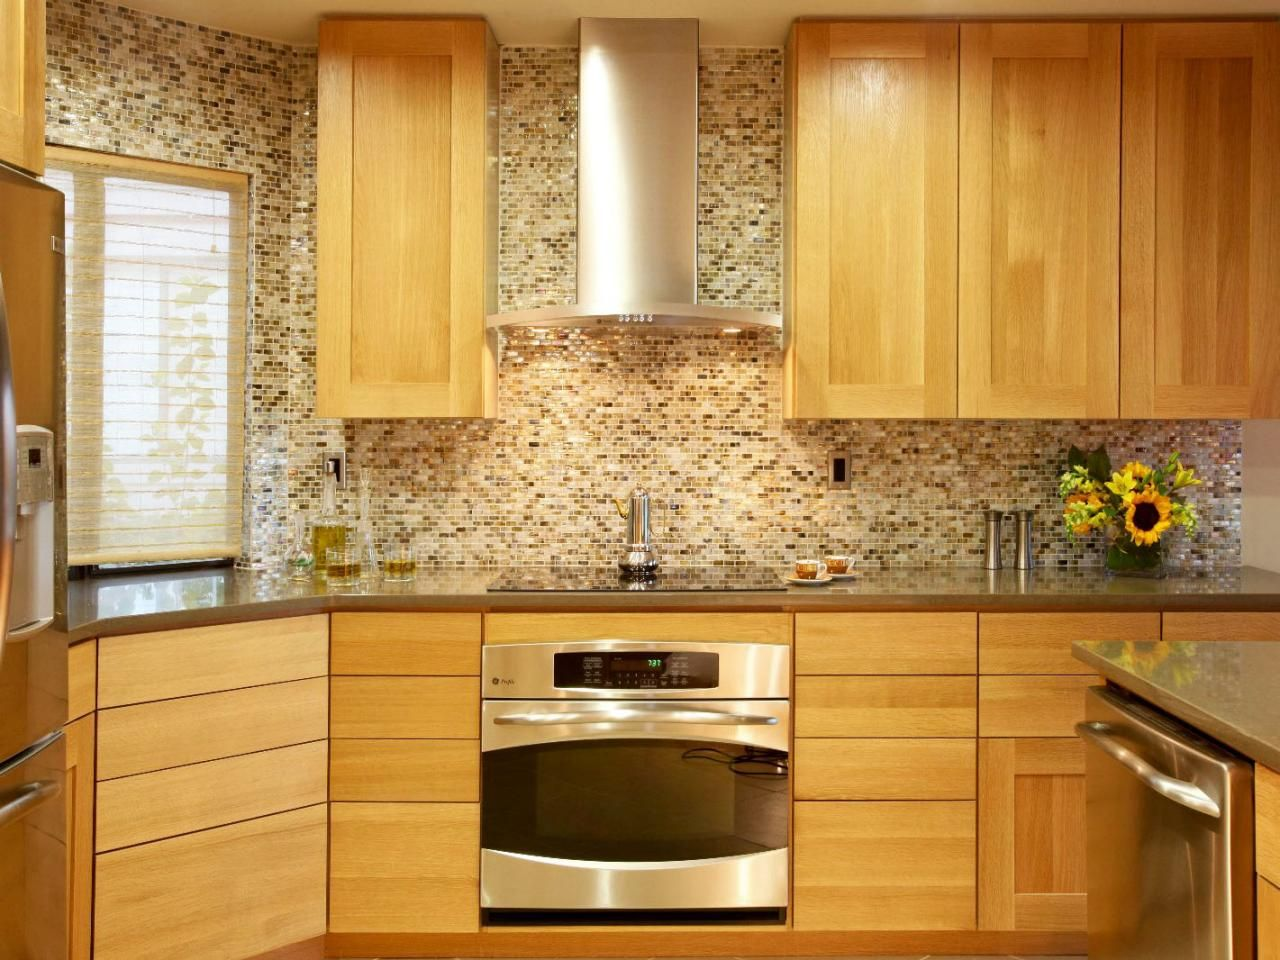 Pictures of kitchen backsplash ideas from inset cabinets pictures of kitchen backsplash ideas from dailygadgetfo Images